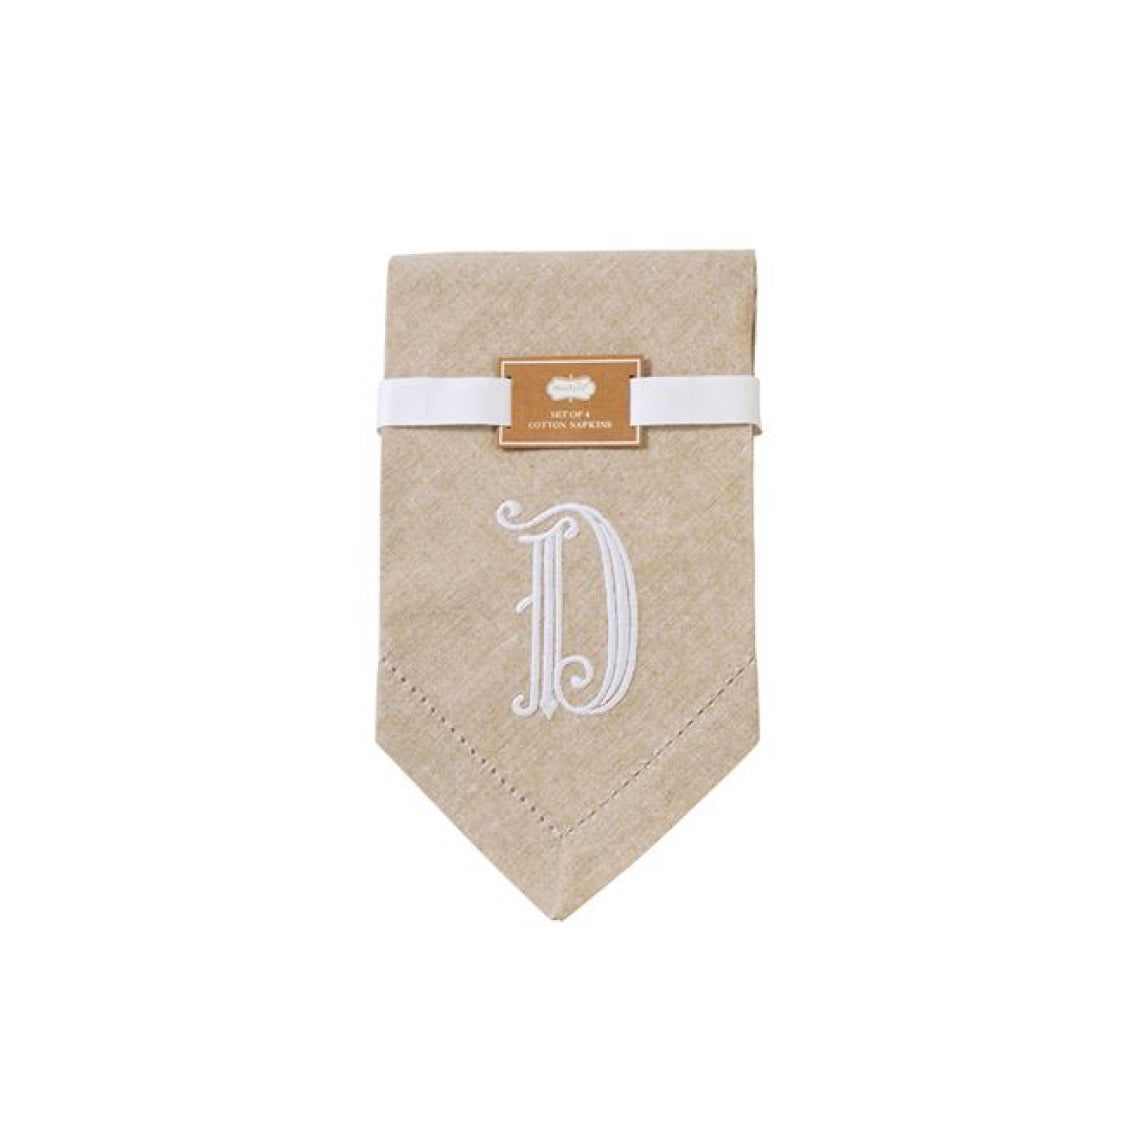 Monogrammed Napkin Set - Initial D, MP-Mud Pie, Putti Fine Furnishings